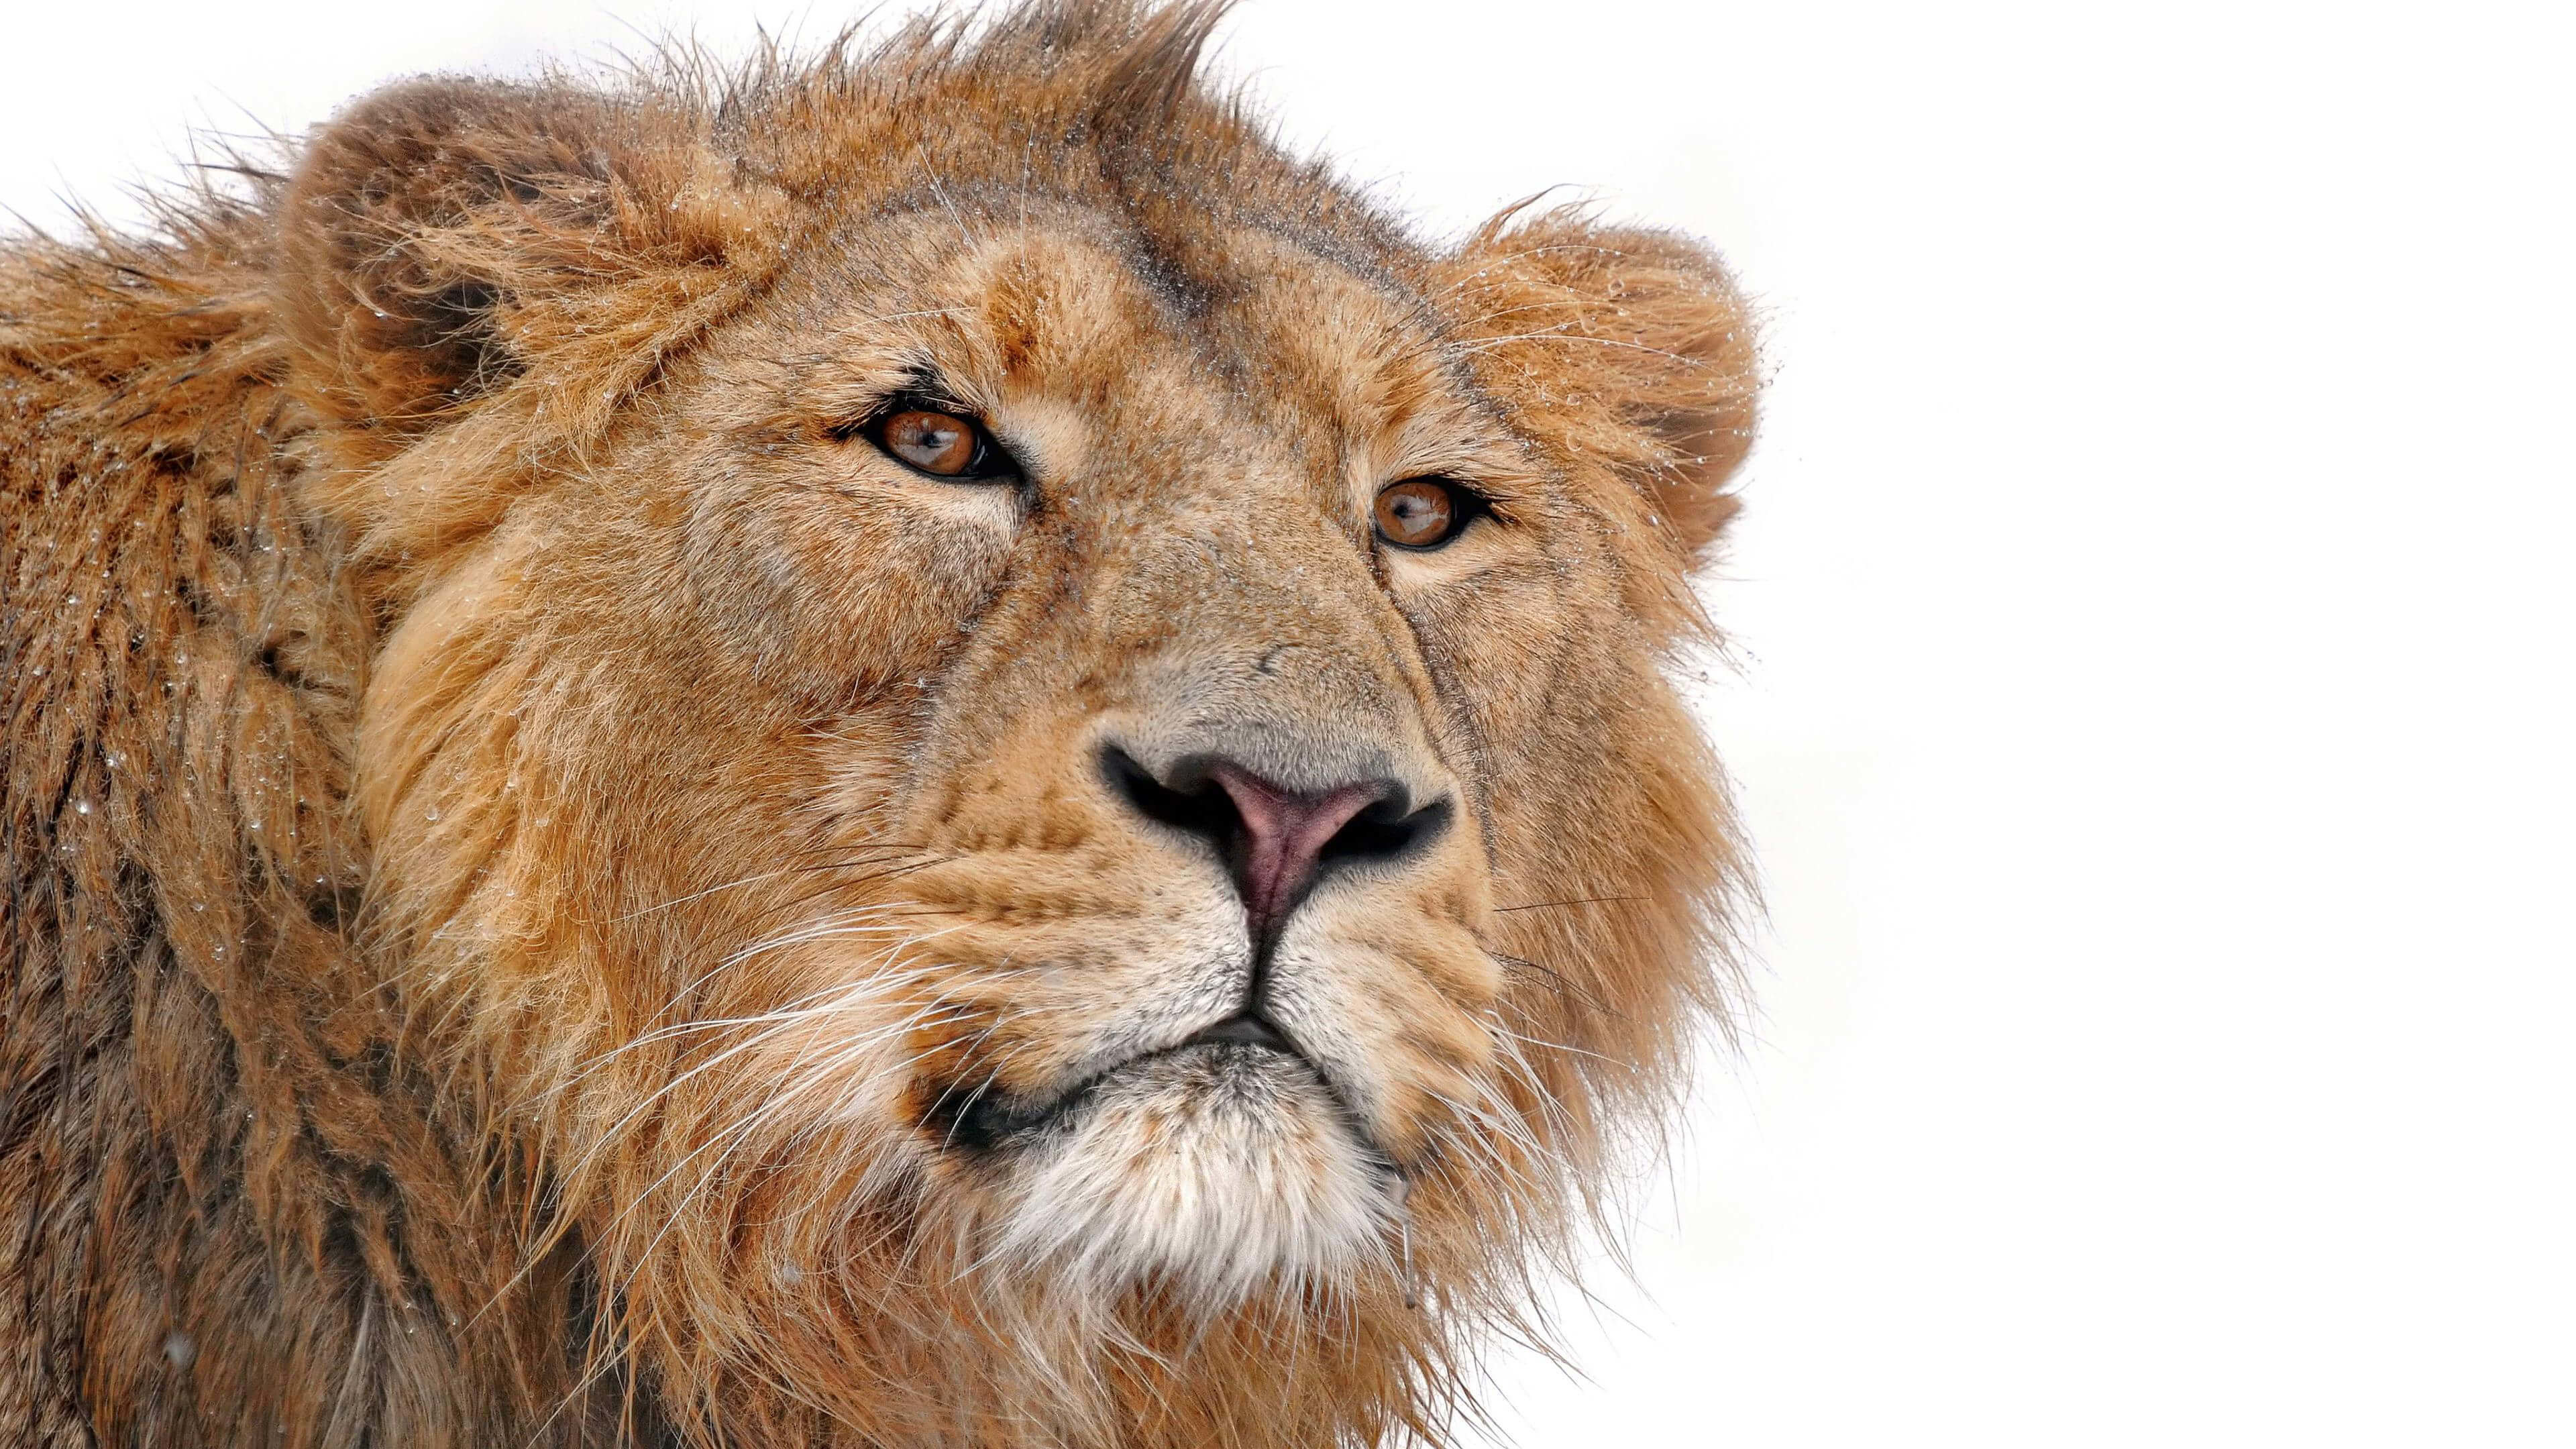 Res: 3840x2160, Lion Face White Background. Rate Wallpaper. DOWNLOAD IMAGE